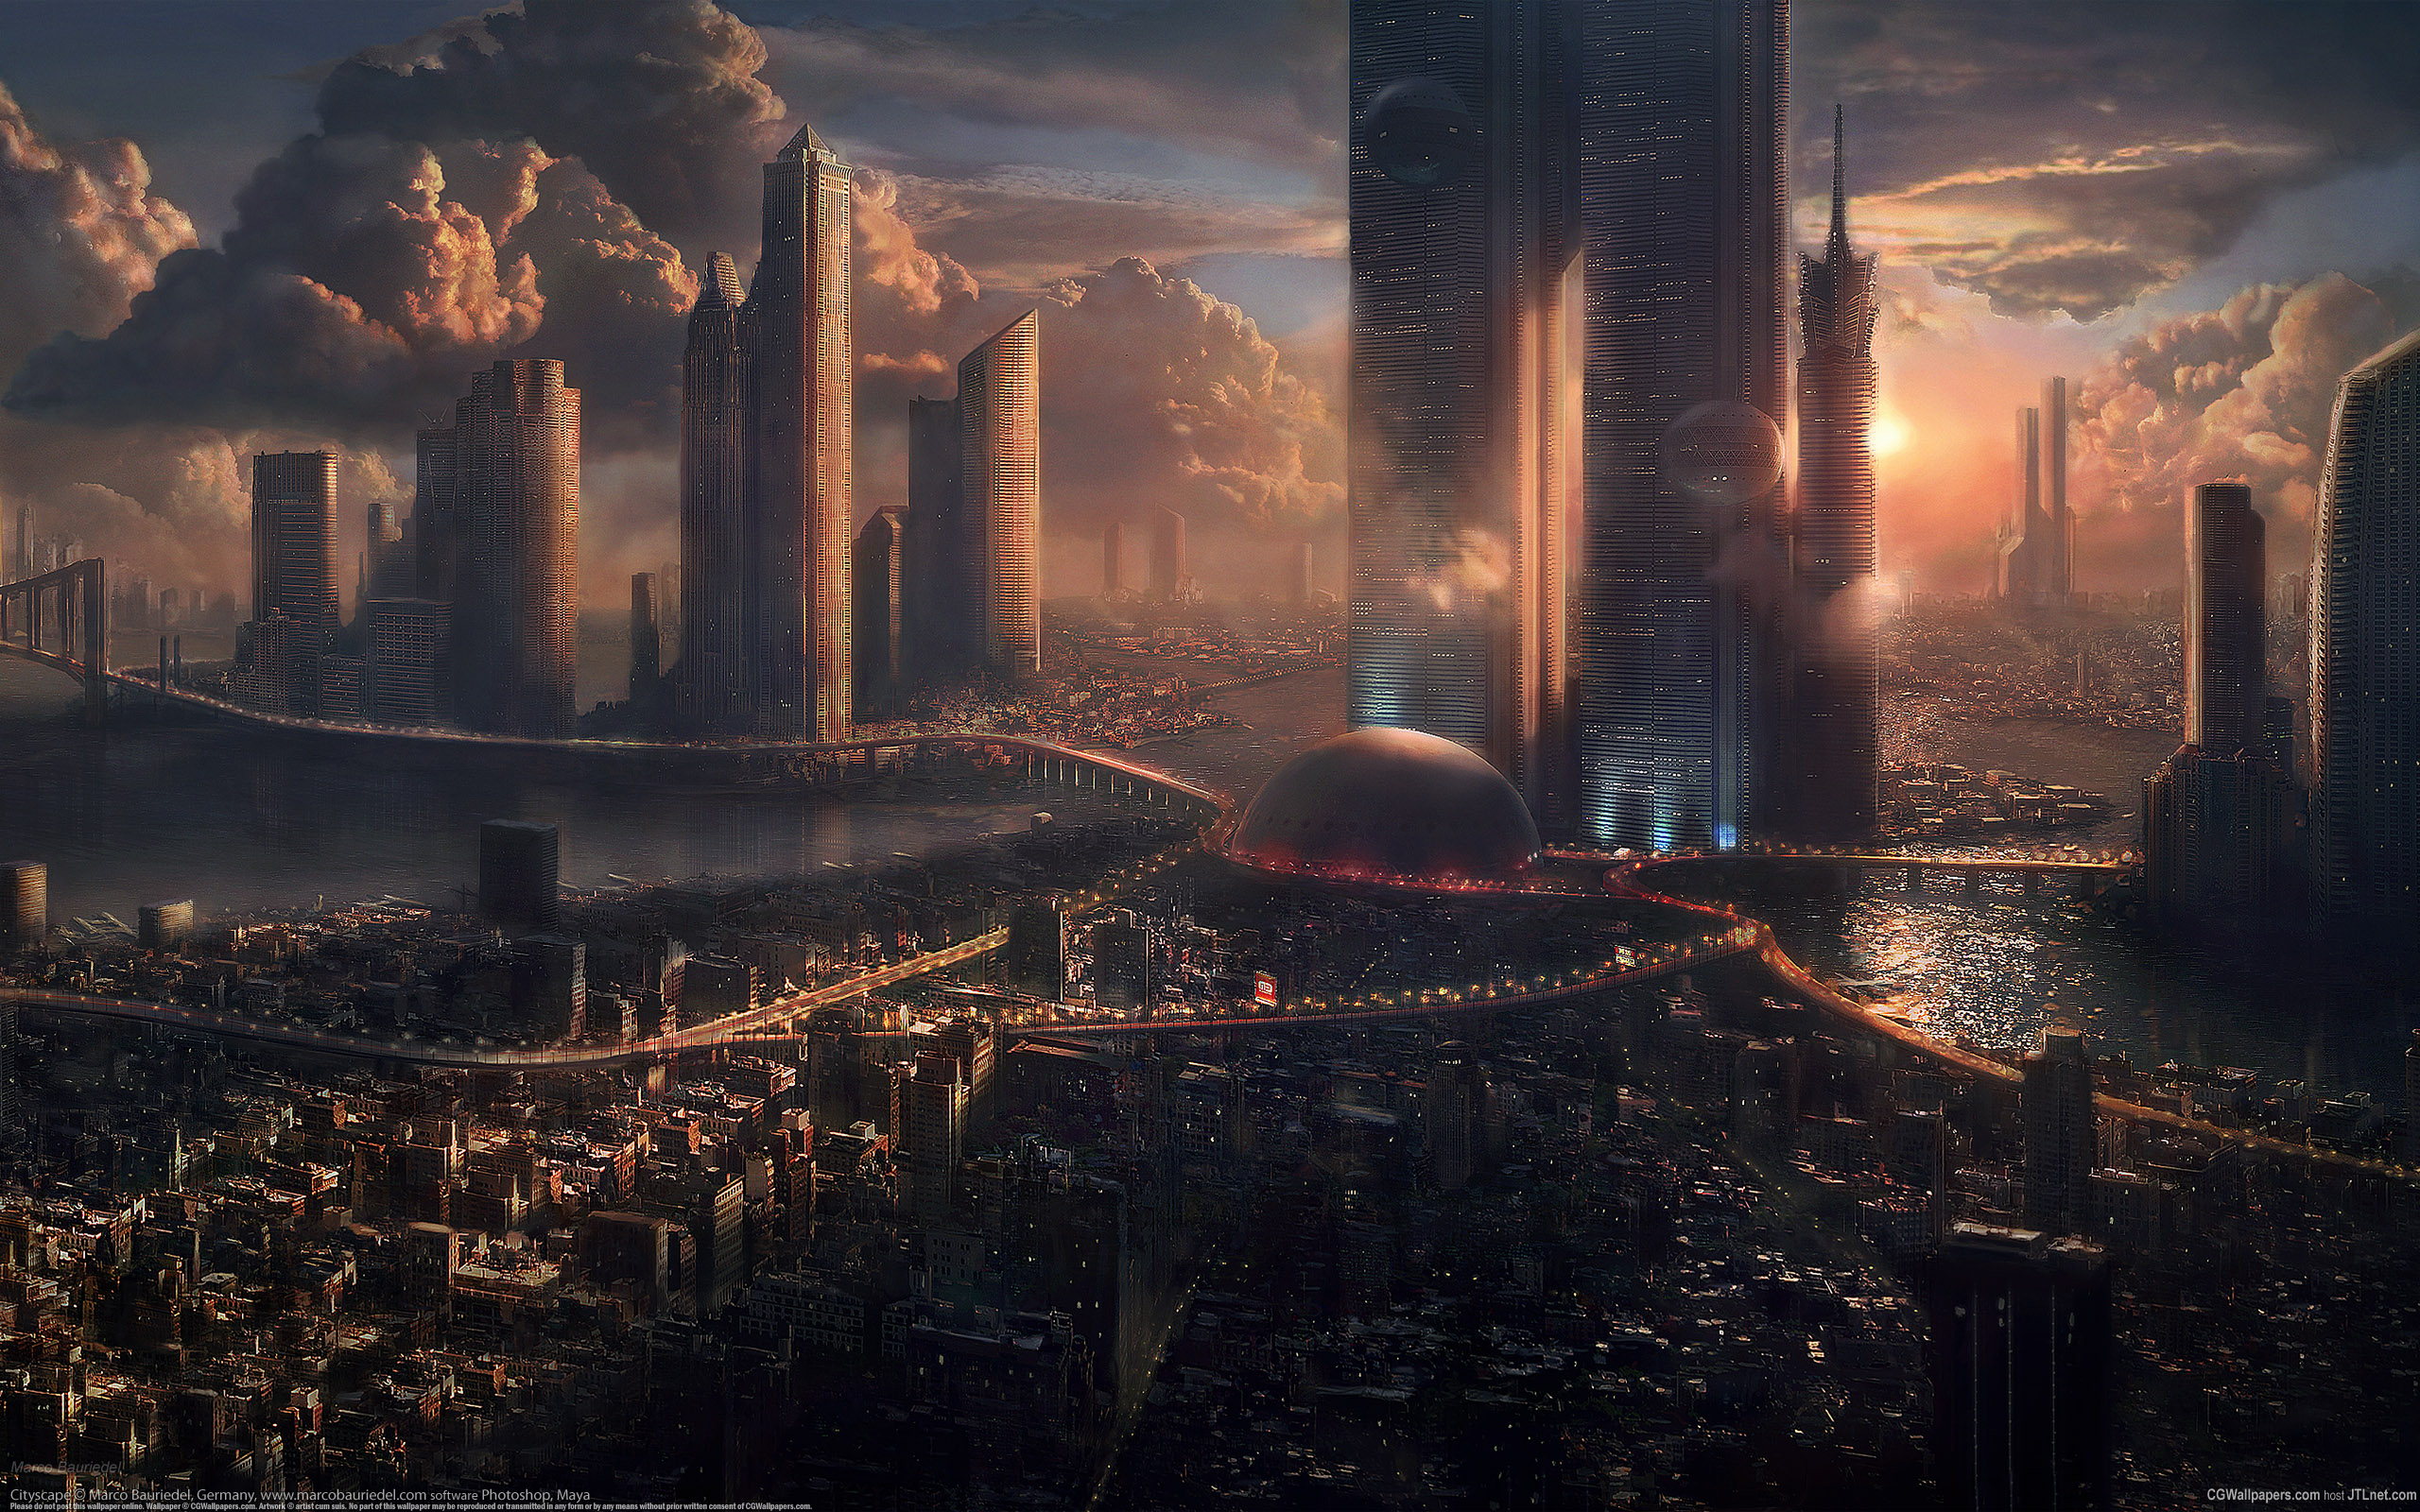 sci fi cities on other planets - photo #4